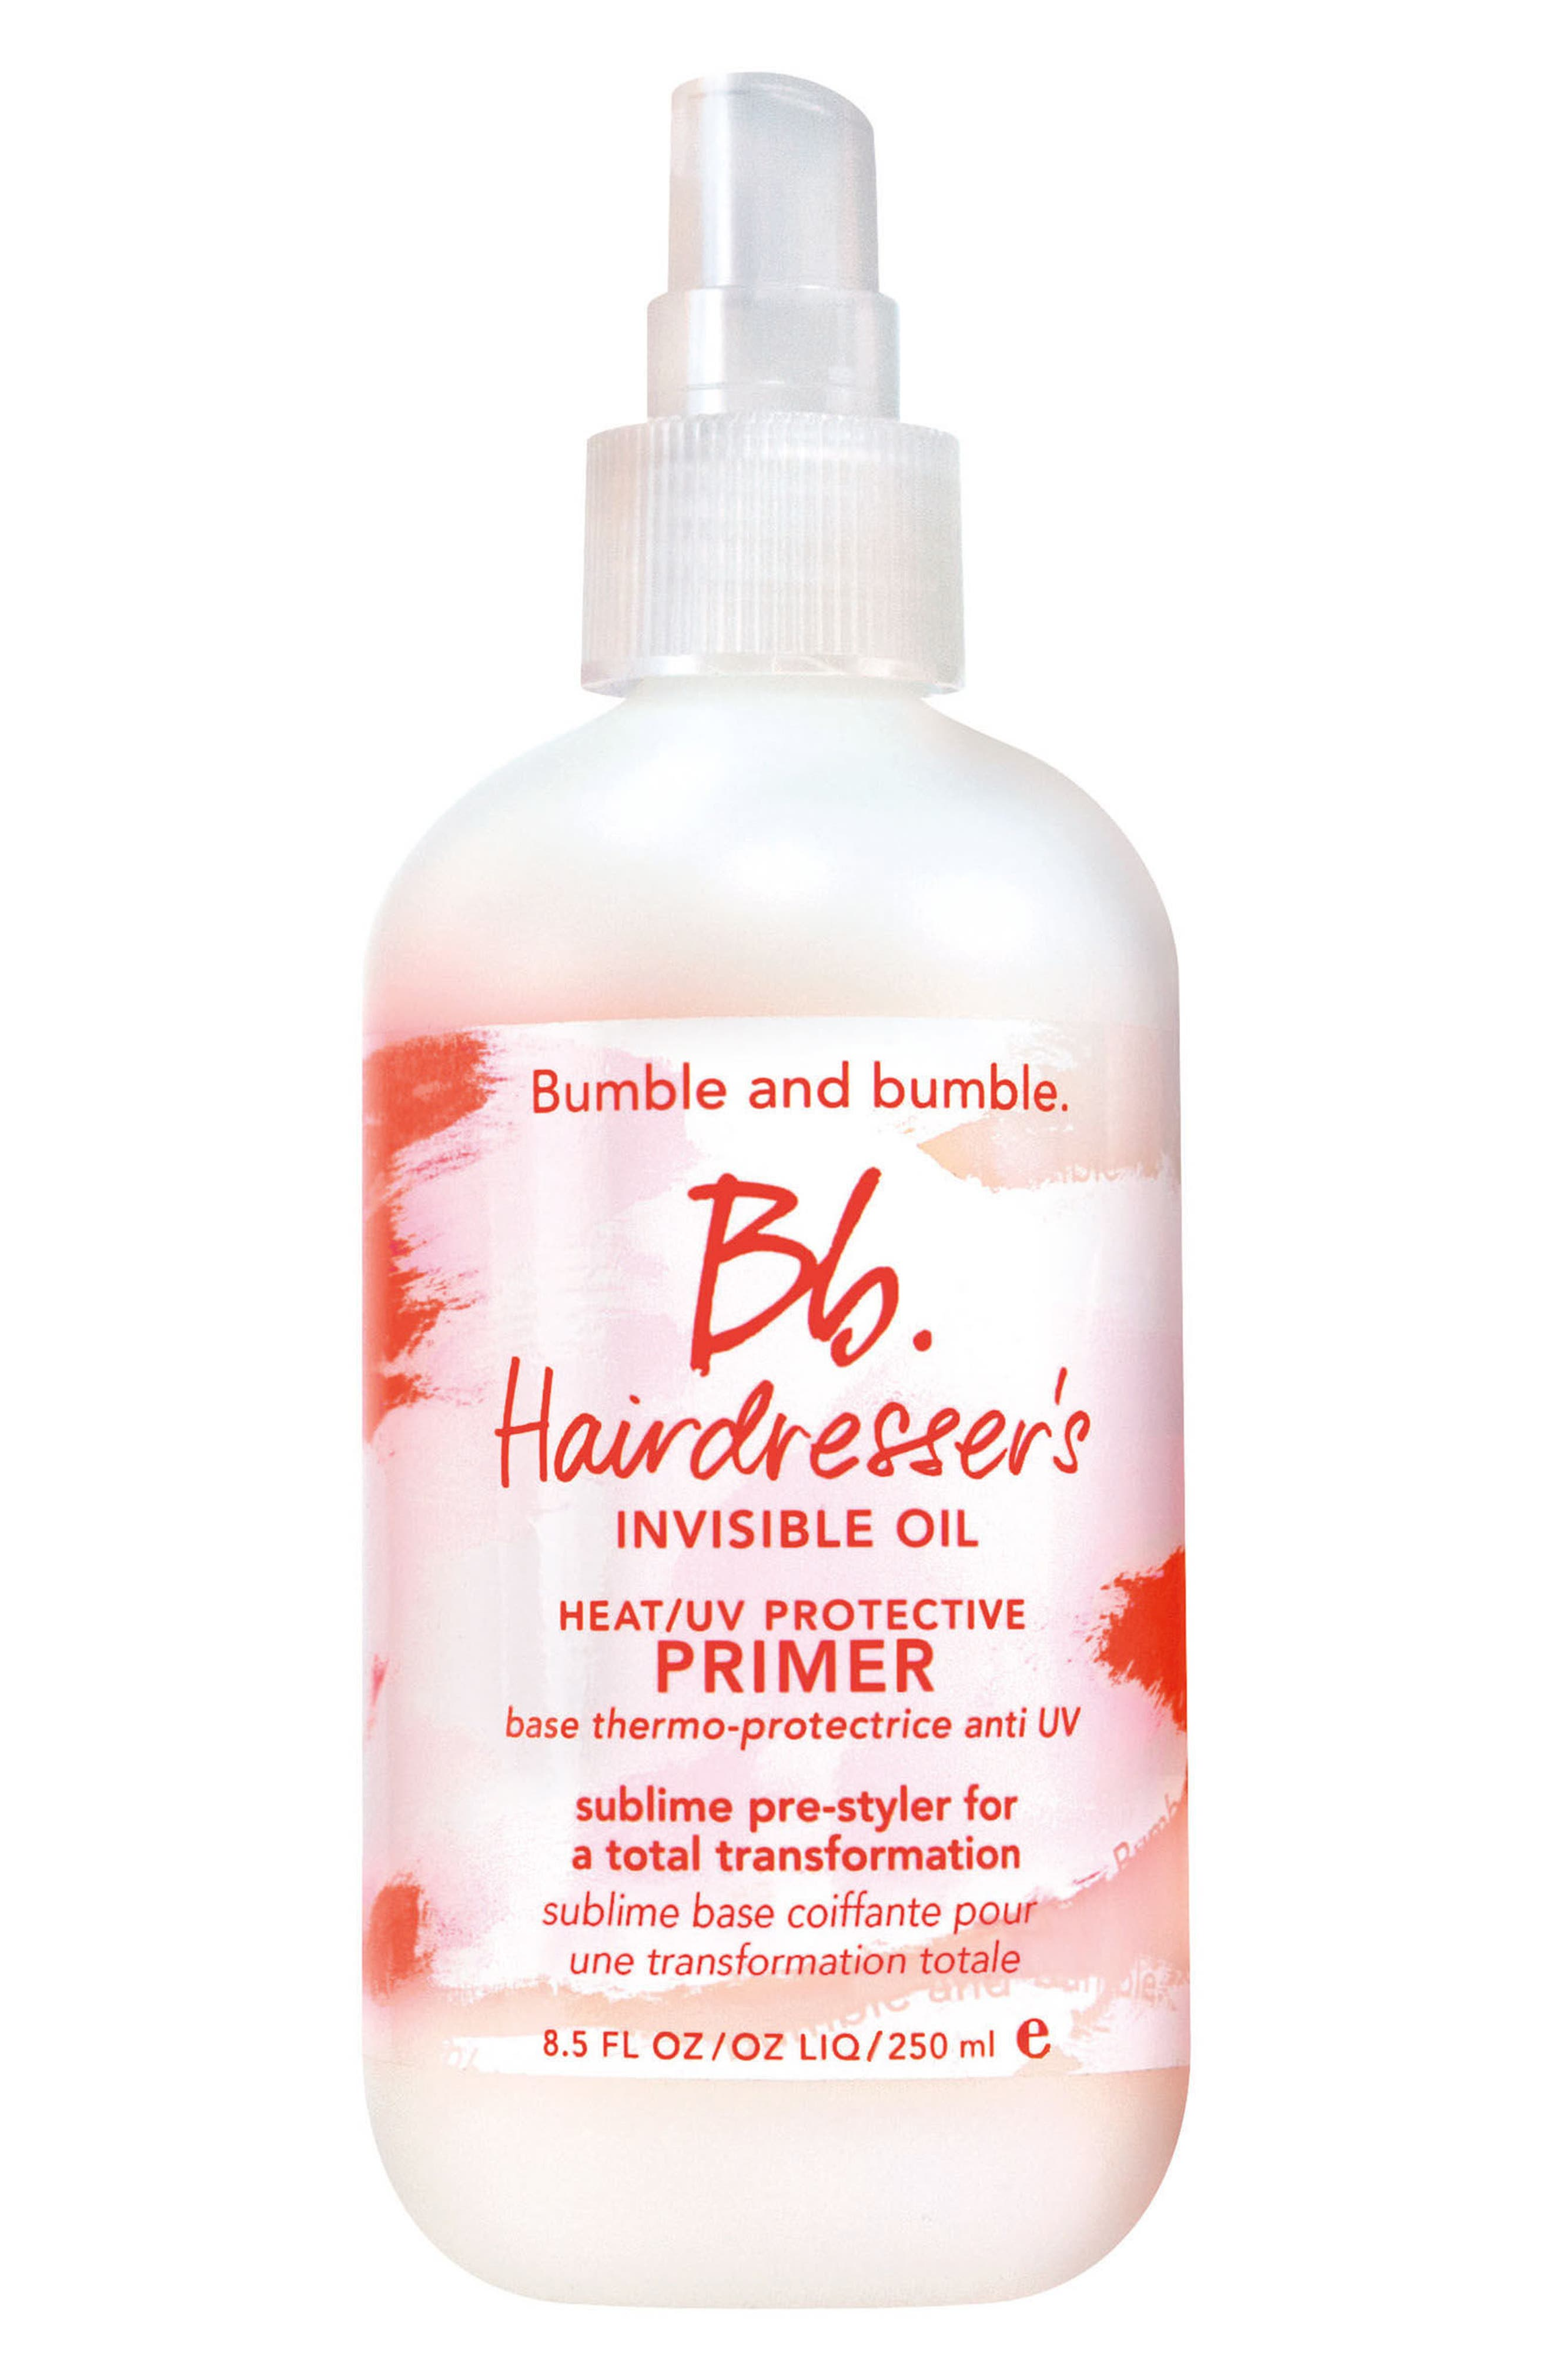 Hairdresser's Invisible Oil Heat/UV Protective Primer,                             Main thumbnail 1, color,                             No Color